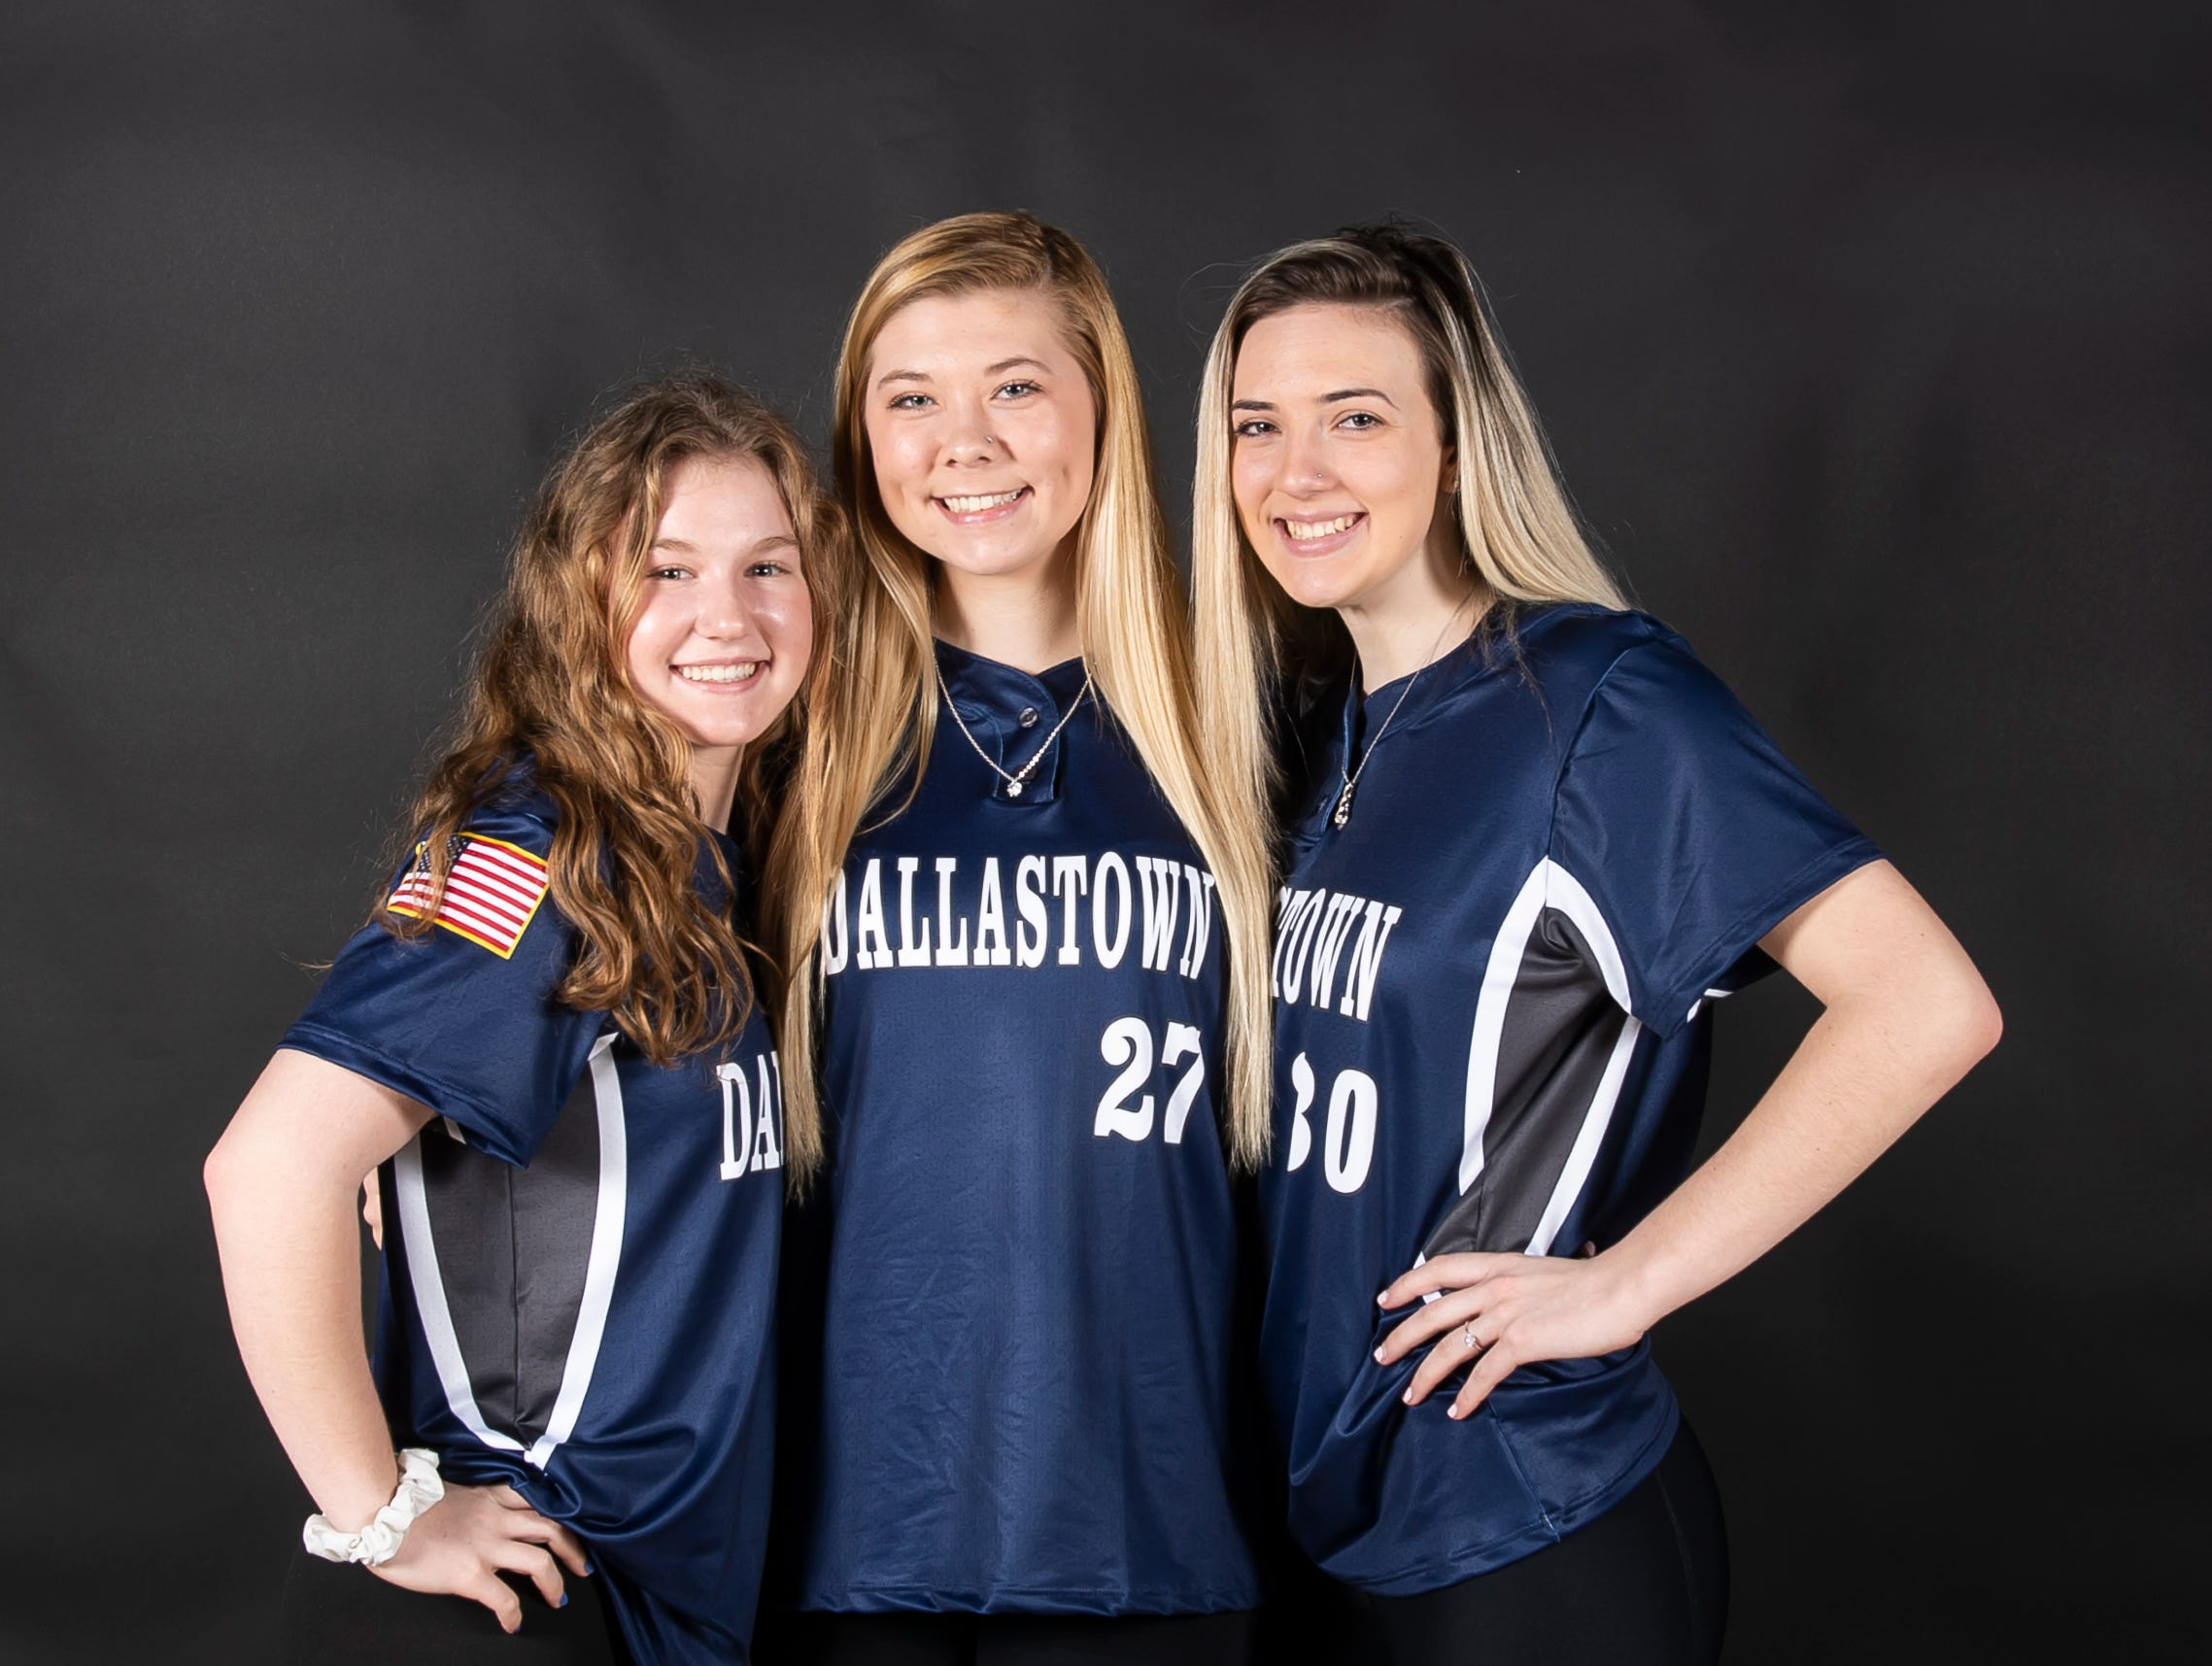 (From left) Dallastown softball players Elaina Winemiller, Kelsie Merriman and Shauna Stotler pose in the GameTimePA photo booth during spring sports media day in York Sunday, March 10, 2019.